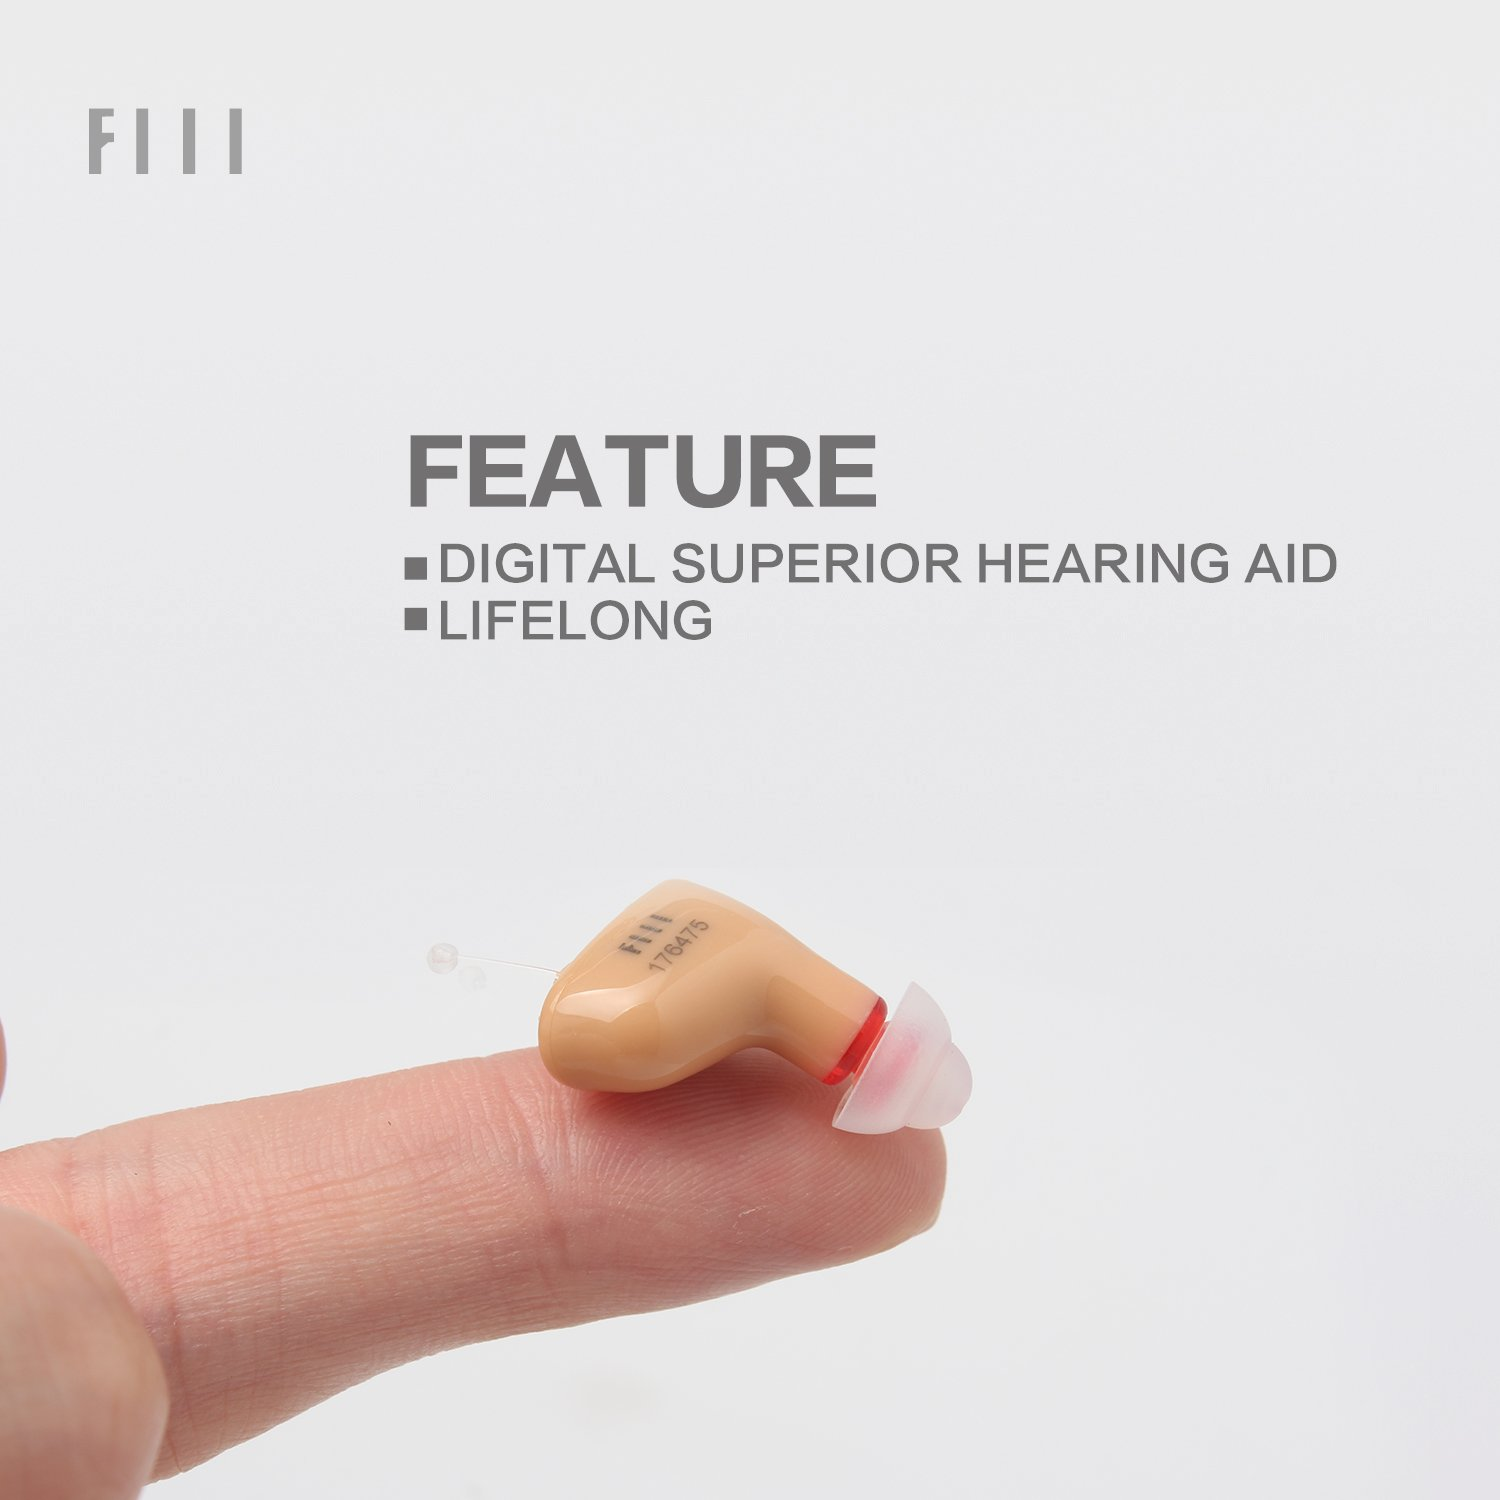 FIIL Hearing Amplifier in Ear Mini Sound Amplifier Battery A10 Voice Control Long Battery Life, Durable Design, Highly Advanced Mini Micro Processor Technology (Right)